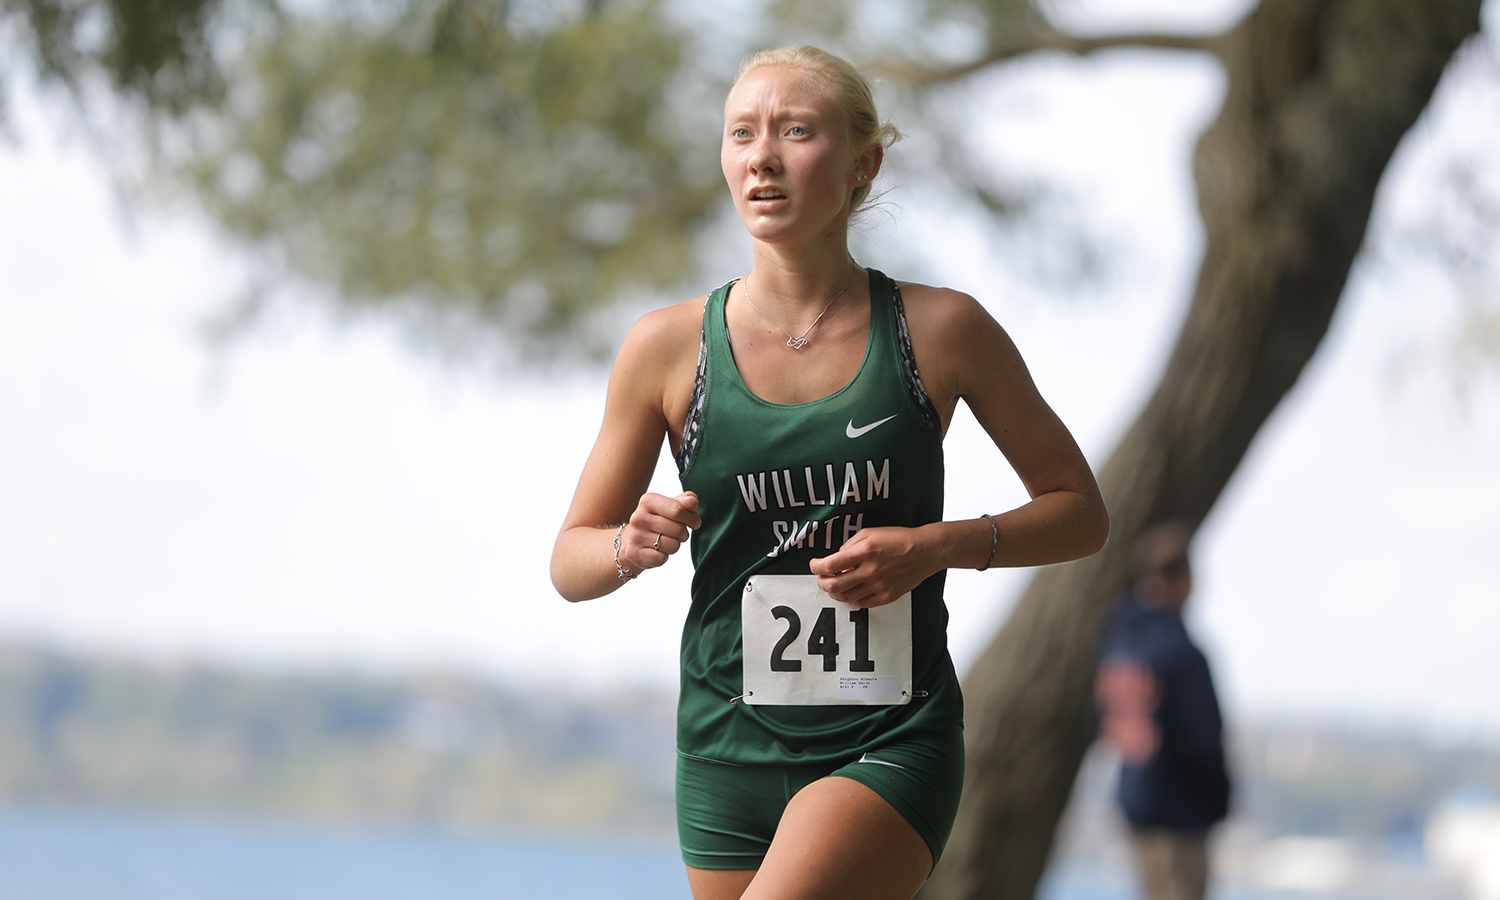 Paighton Alberts '21 keeps pace during the Cross Country Only Conference championships at Seneca Lake State Park. Alberts was named the Liberty League Women's Cross Country Rookie of the Week, placing eighth out of 112 runners.